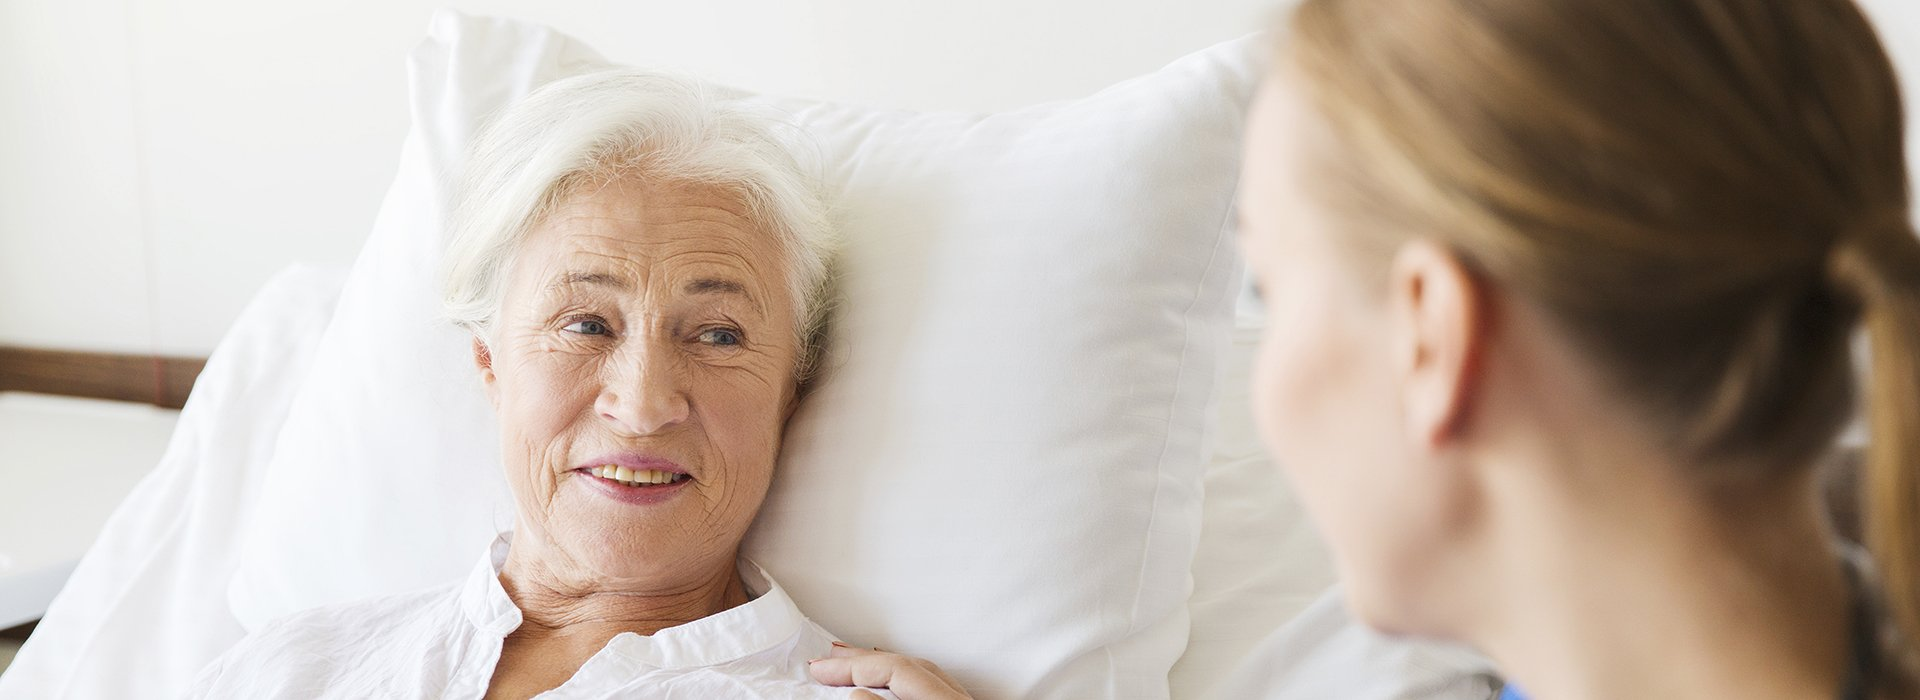 Mature woman in hospital bed.